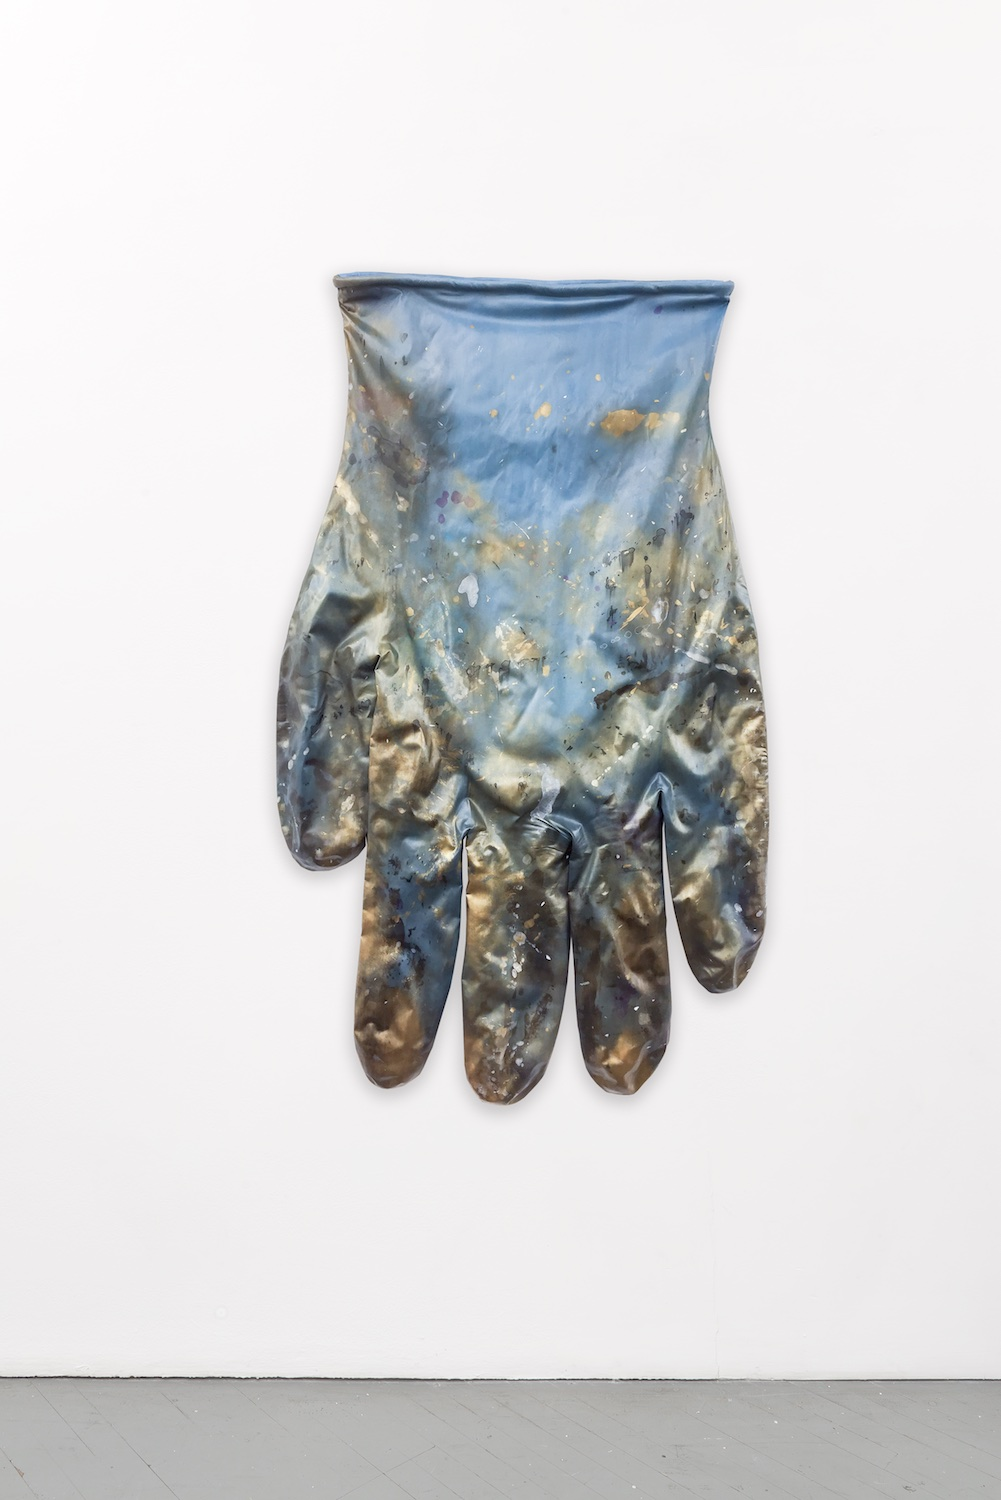 Amanda Ross-Ho  BLUE GLOVE RIGHT #3  2015 Dyed stretch cotton sateen, acrylic paint, cotton piping, armature wire 70h x 42w in ARH100